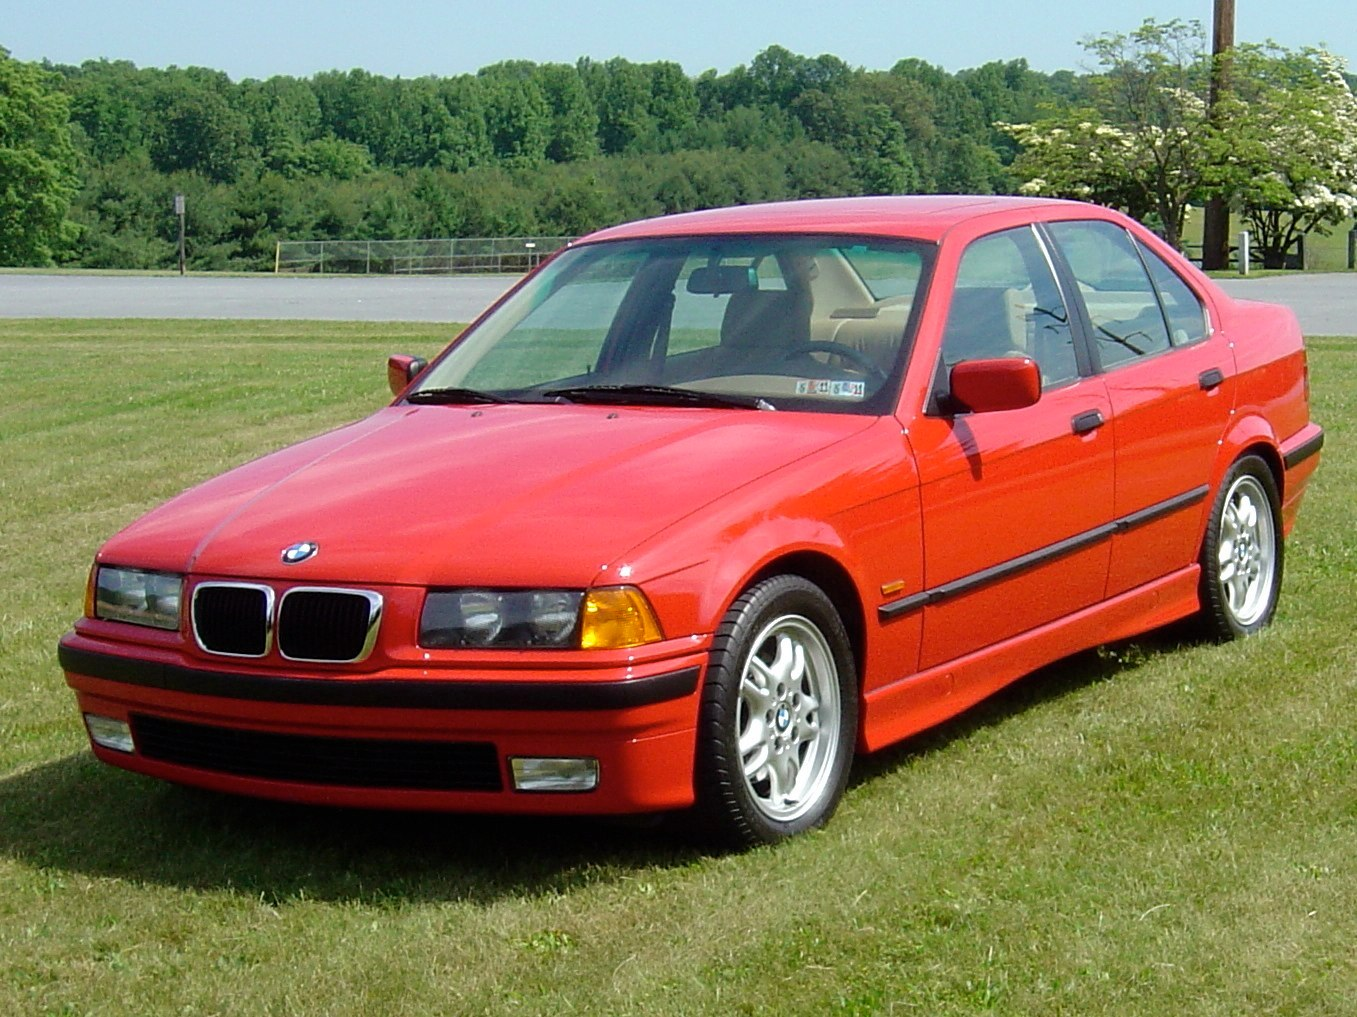 Bmw 318i 1997 Review Amazing Pictures And Images Look At The Car